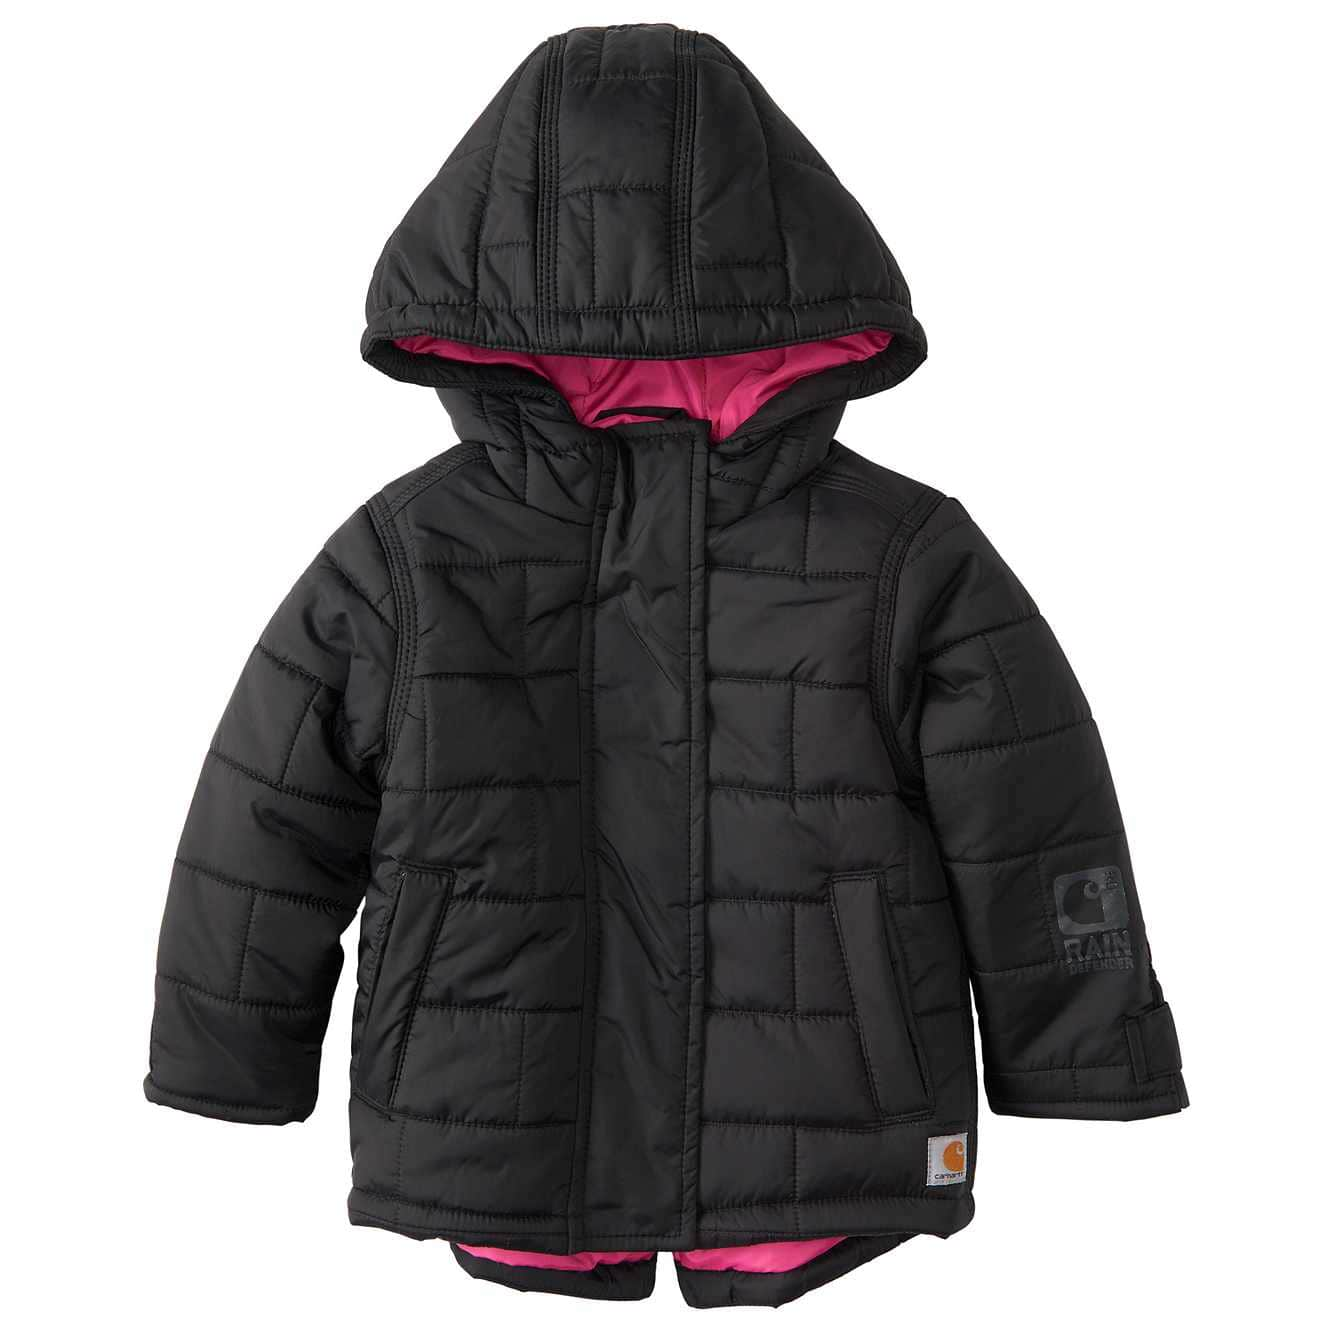 Picture of Amoret Quilted Jacket in Car Black